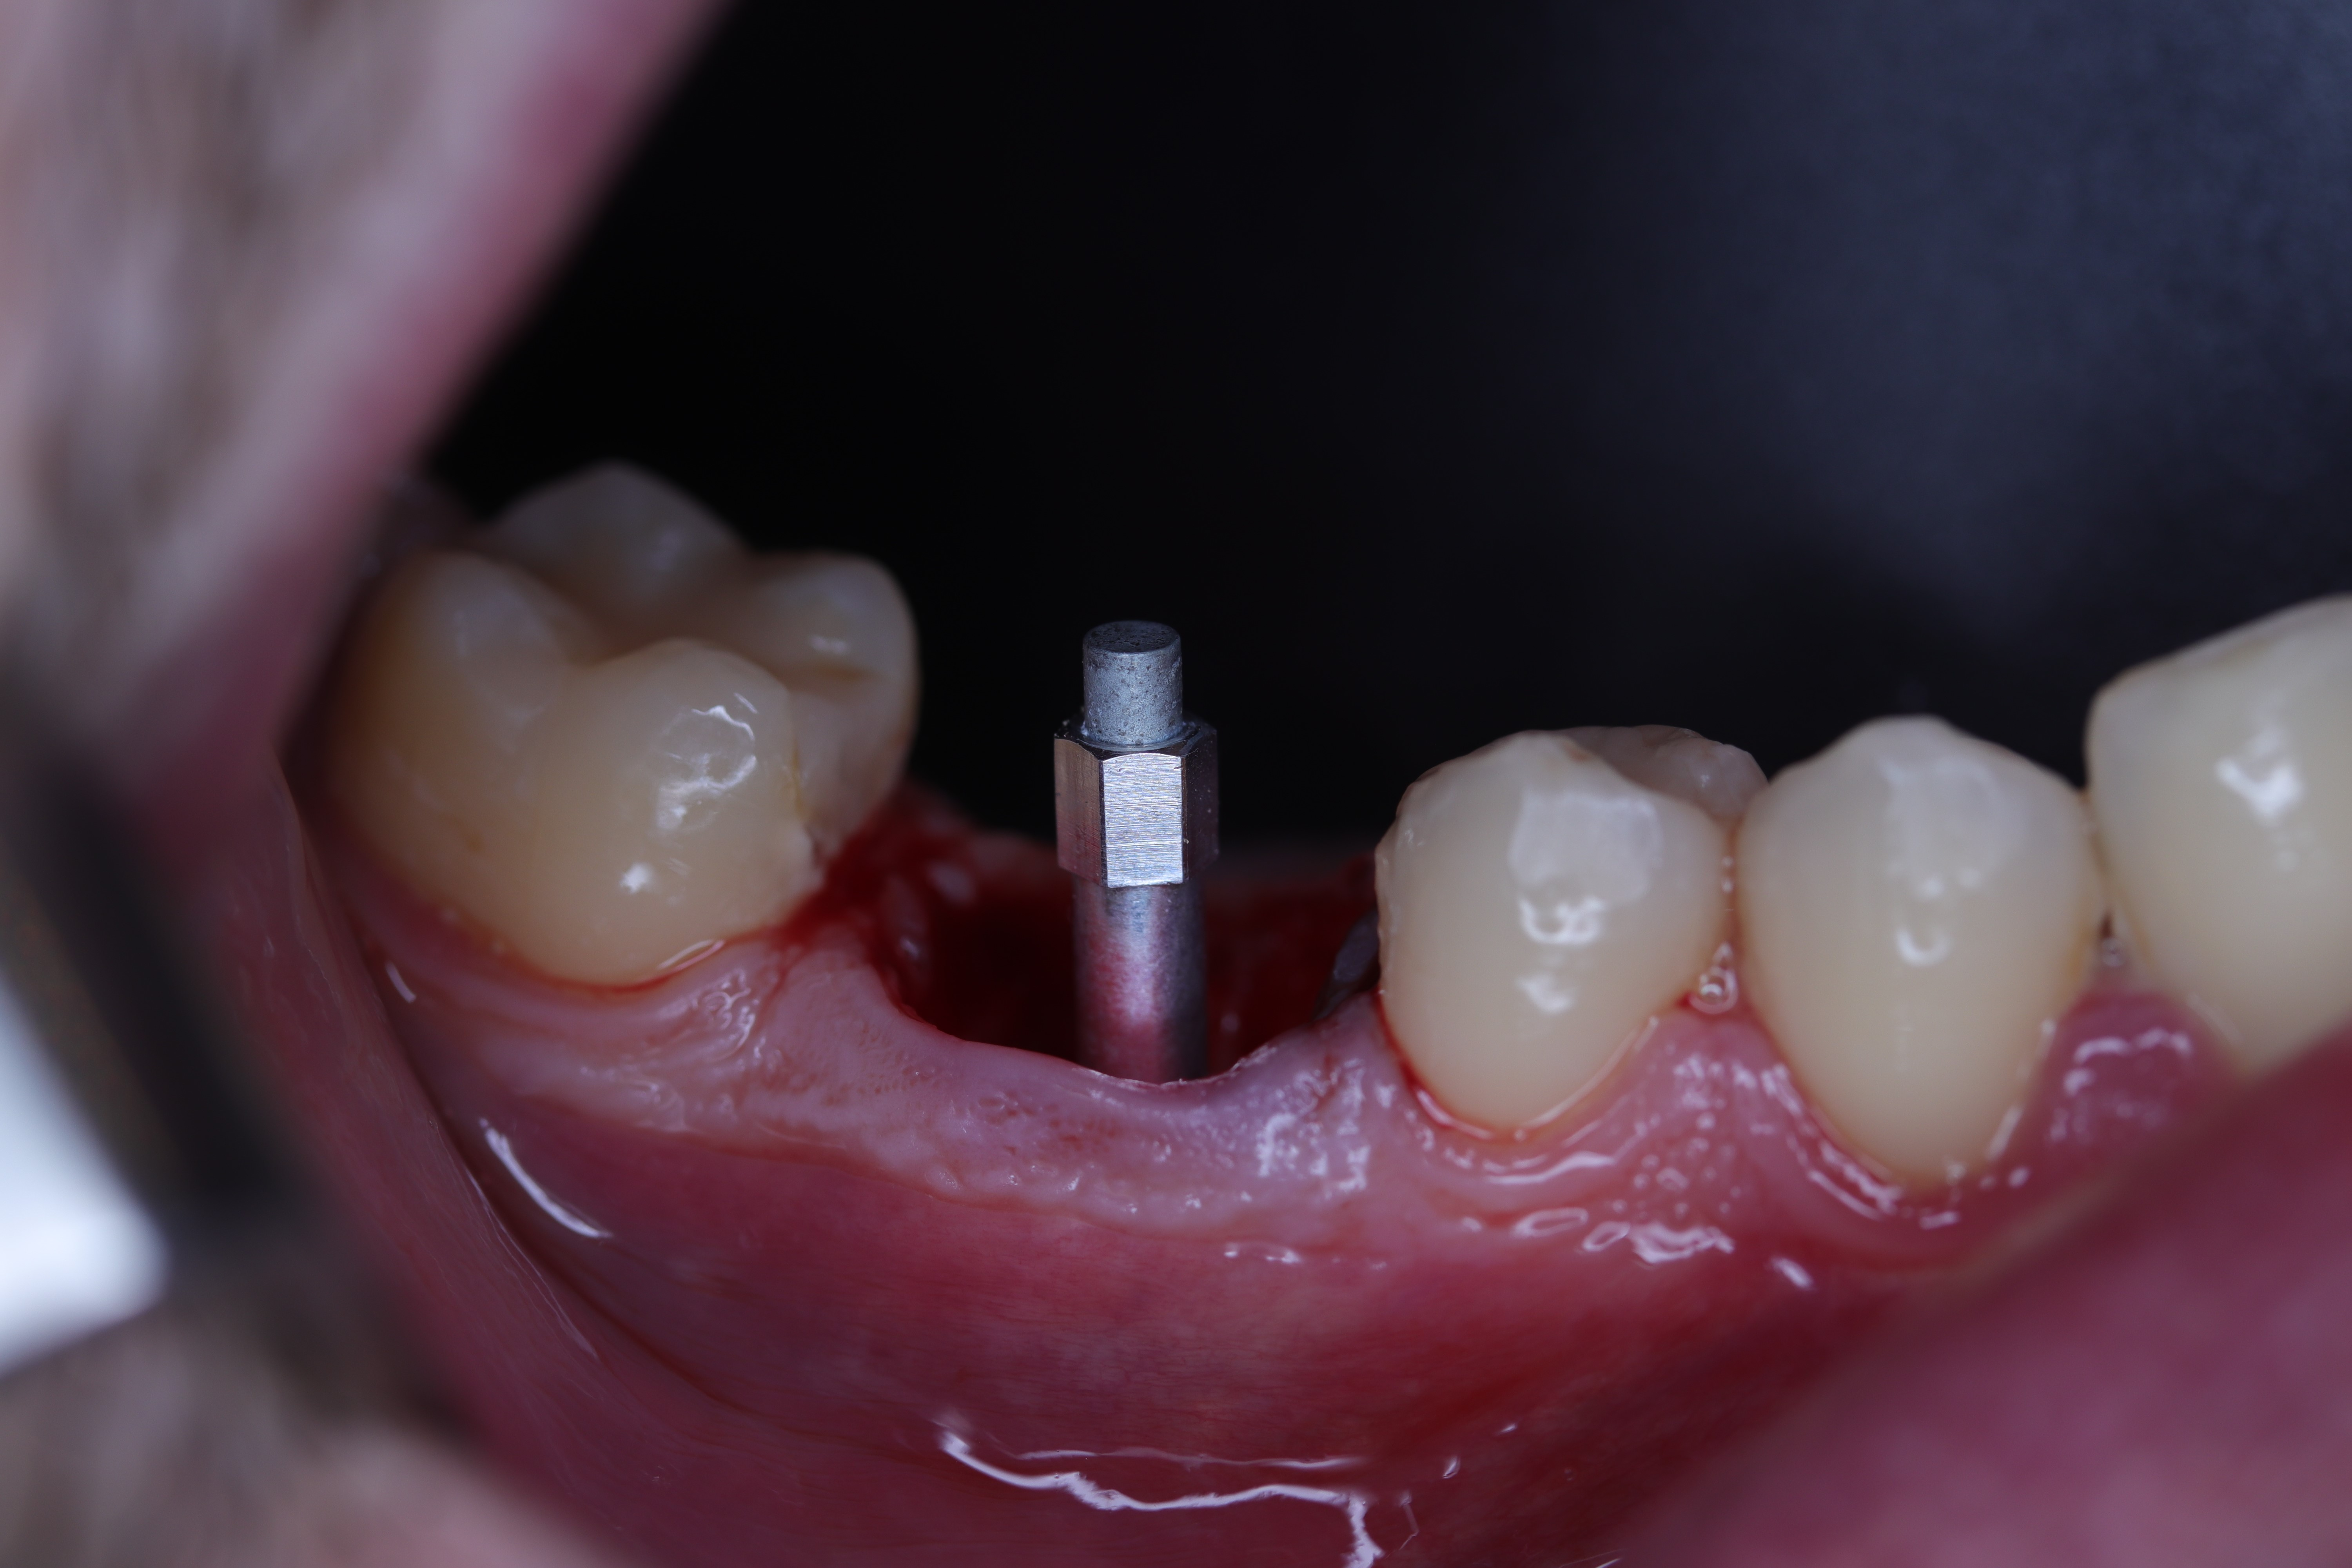 Figure 4 Smart-peg (Type 16) screwed to the implant platform